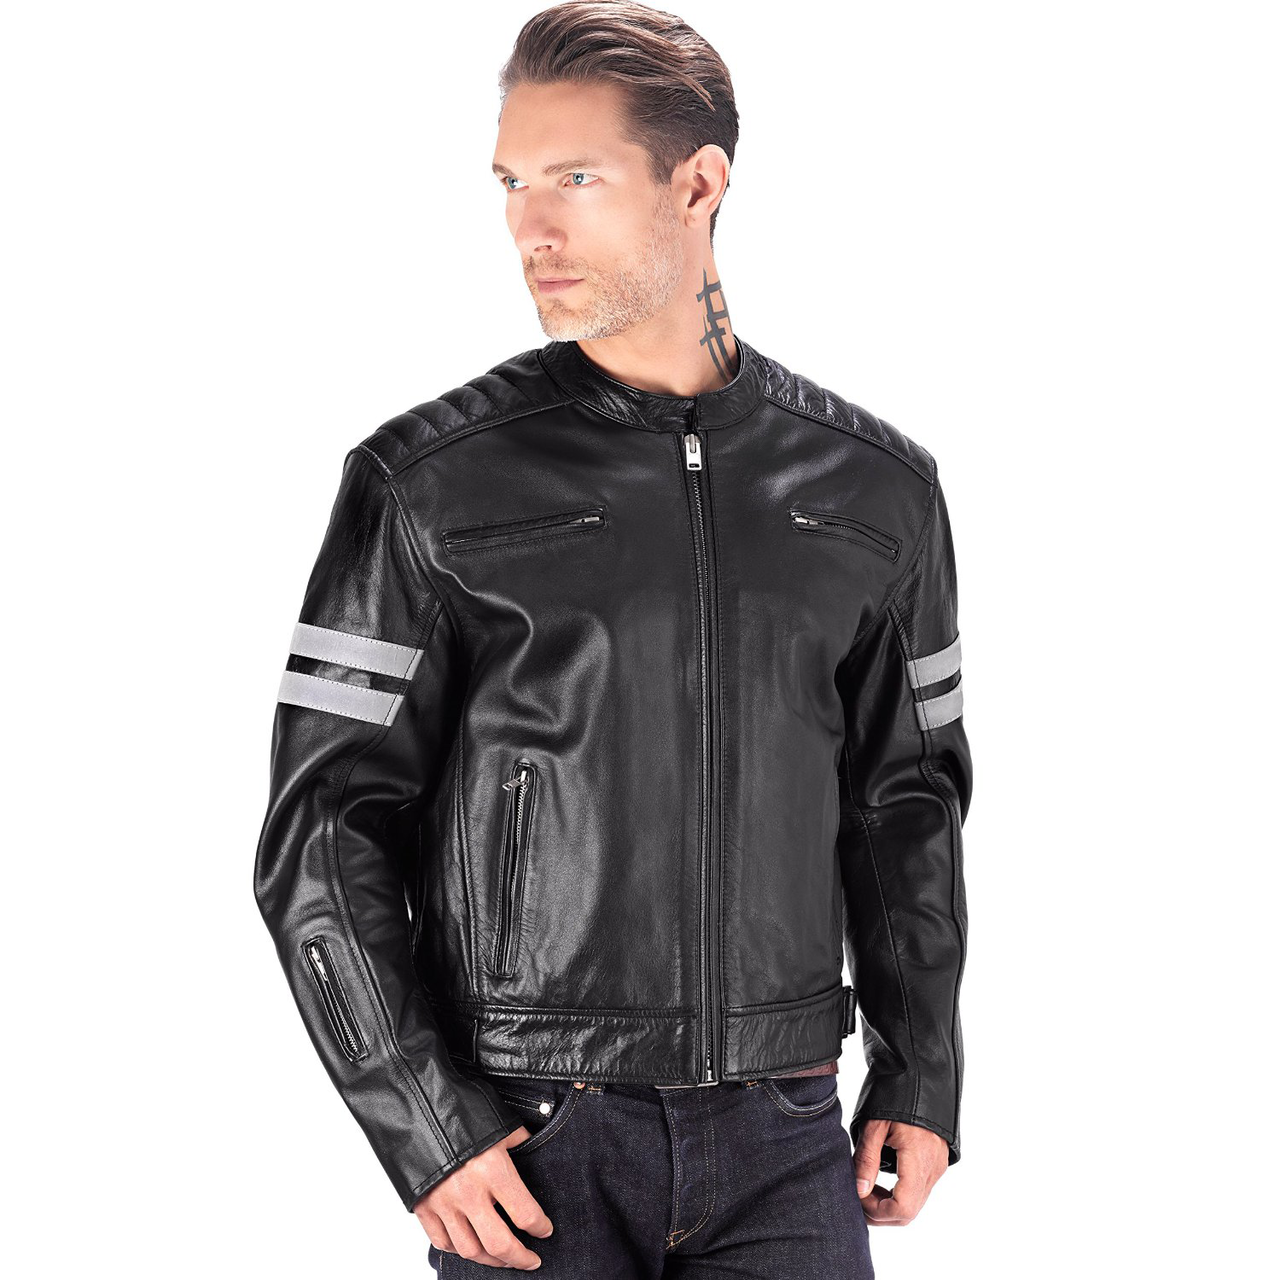 motorcycle jackets viking cycle bloodaxe leather motorcycle jacket for men front view ... njtwmqy